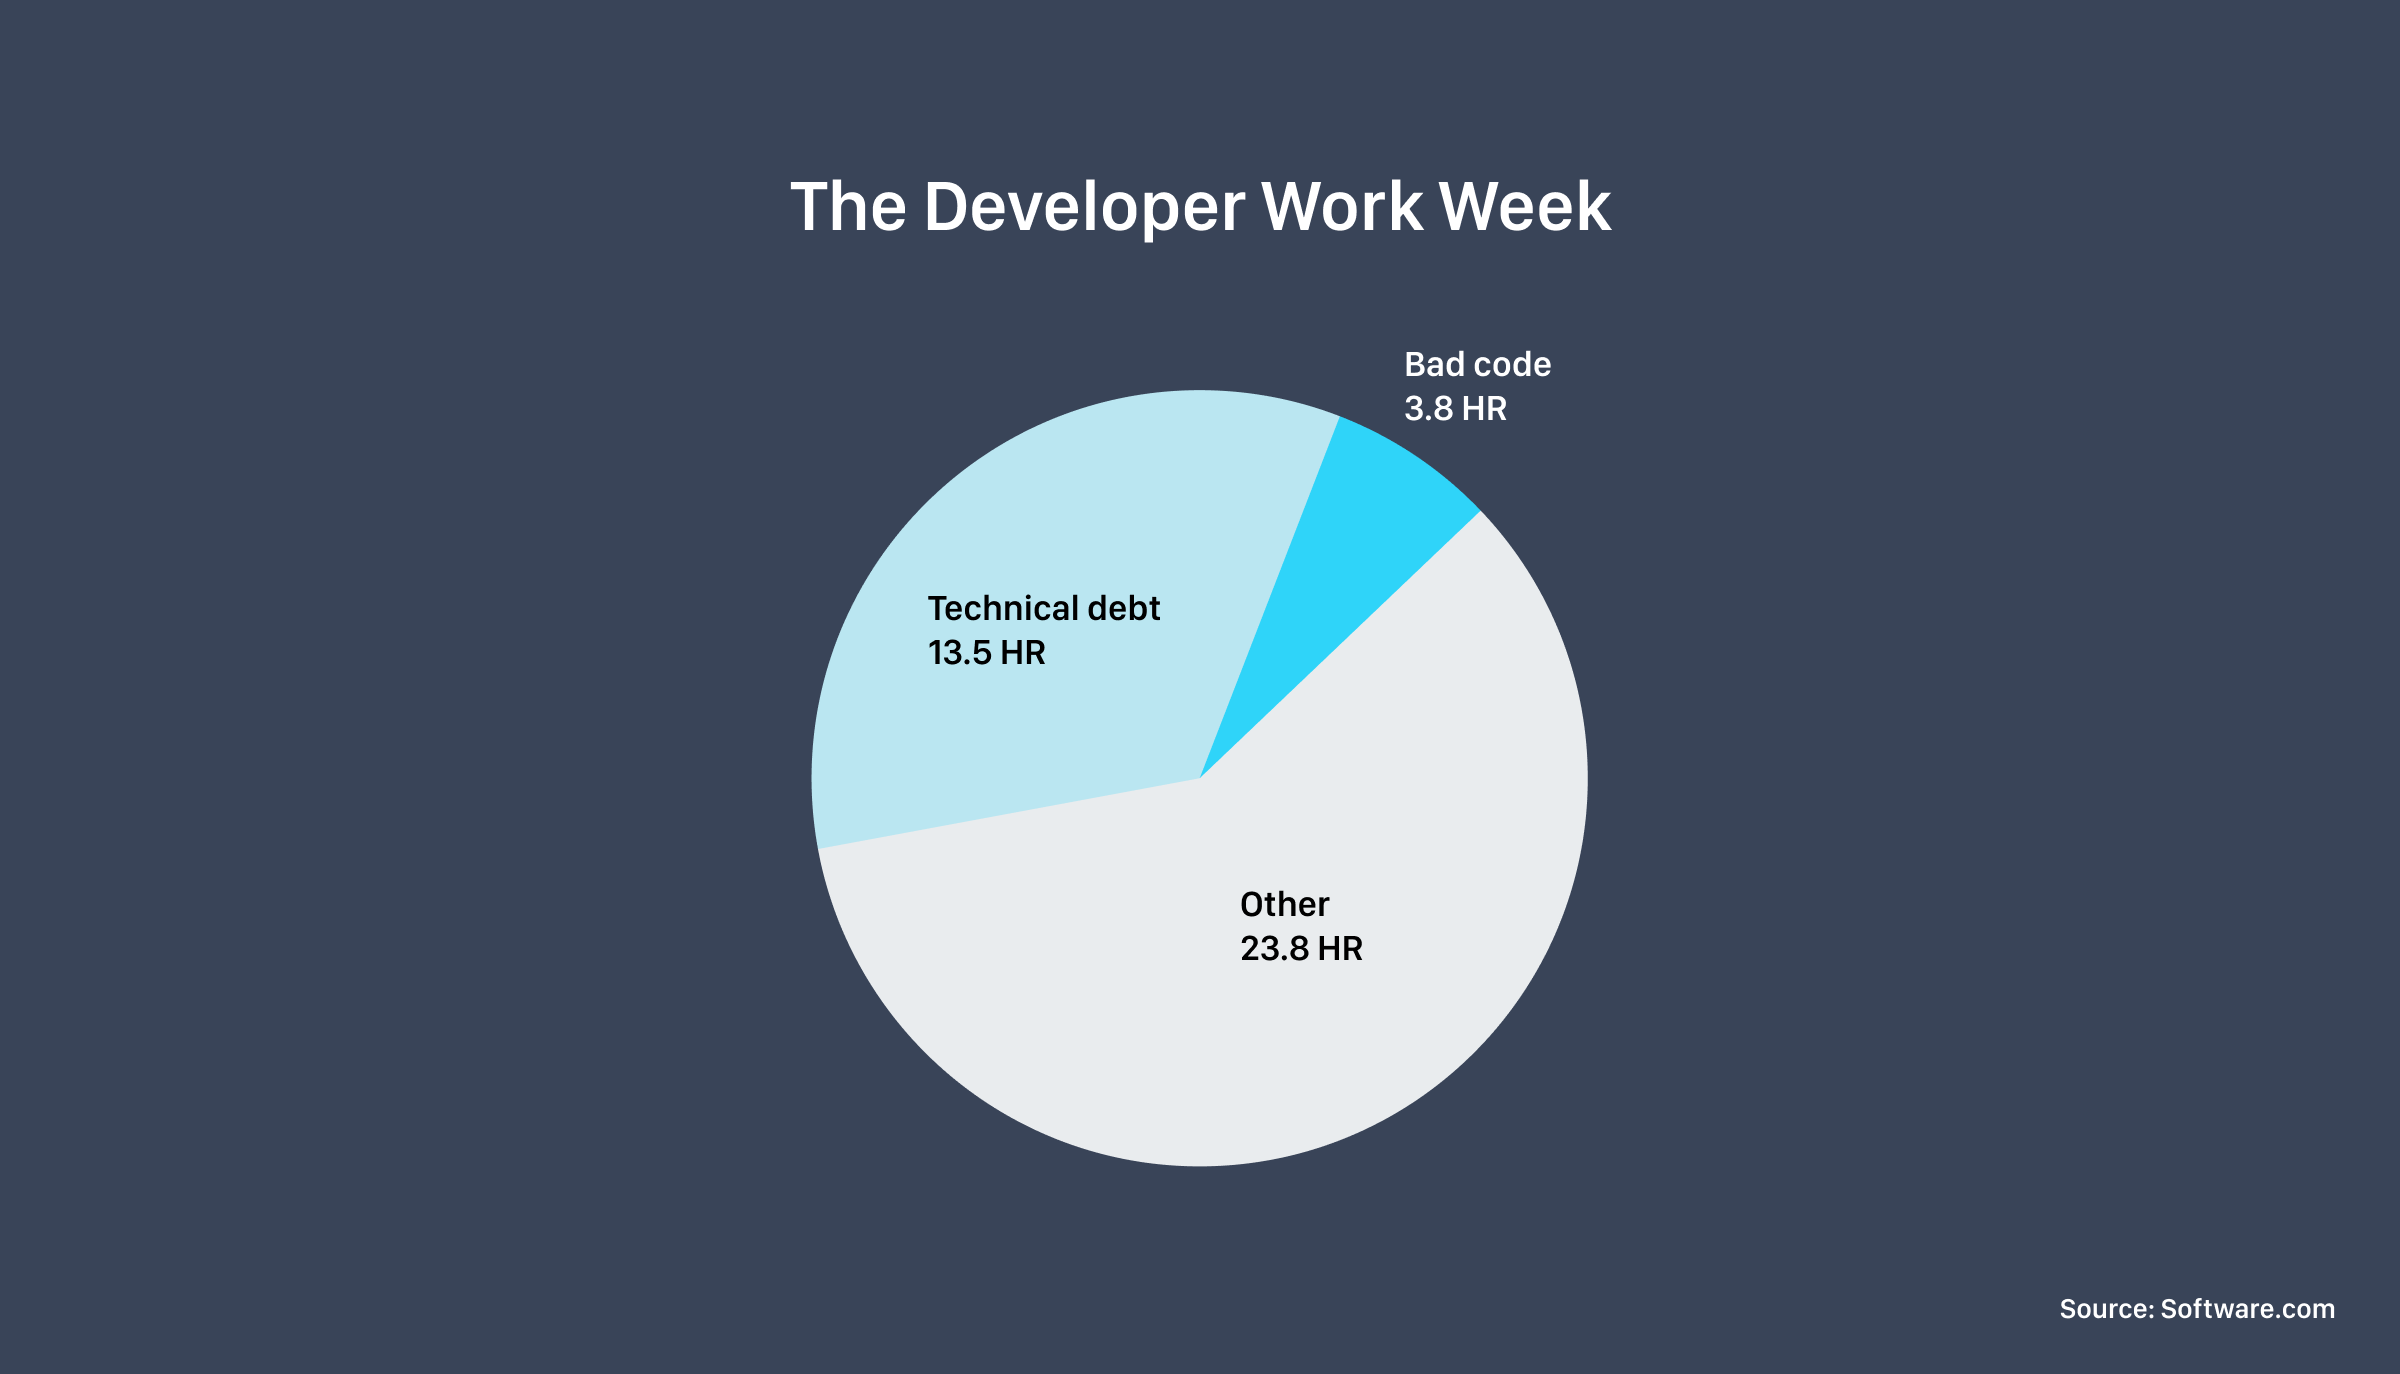 The Developer Work Week involving technical debt and bad code, which impact developer productivity